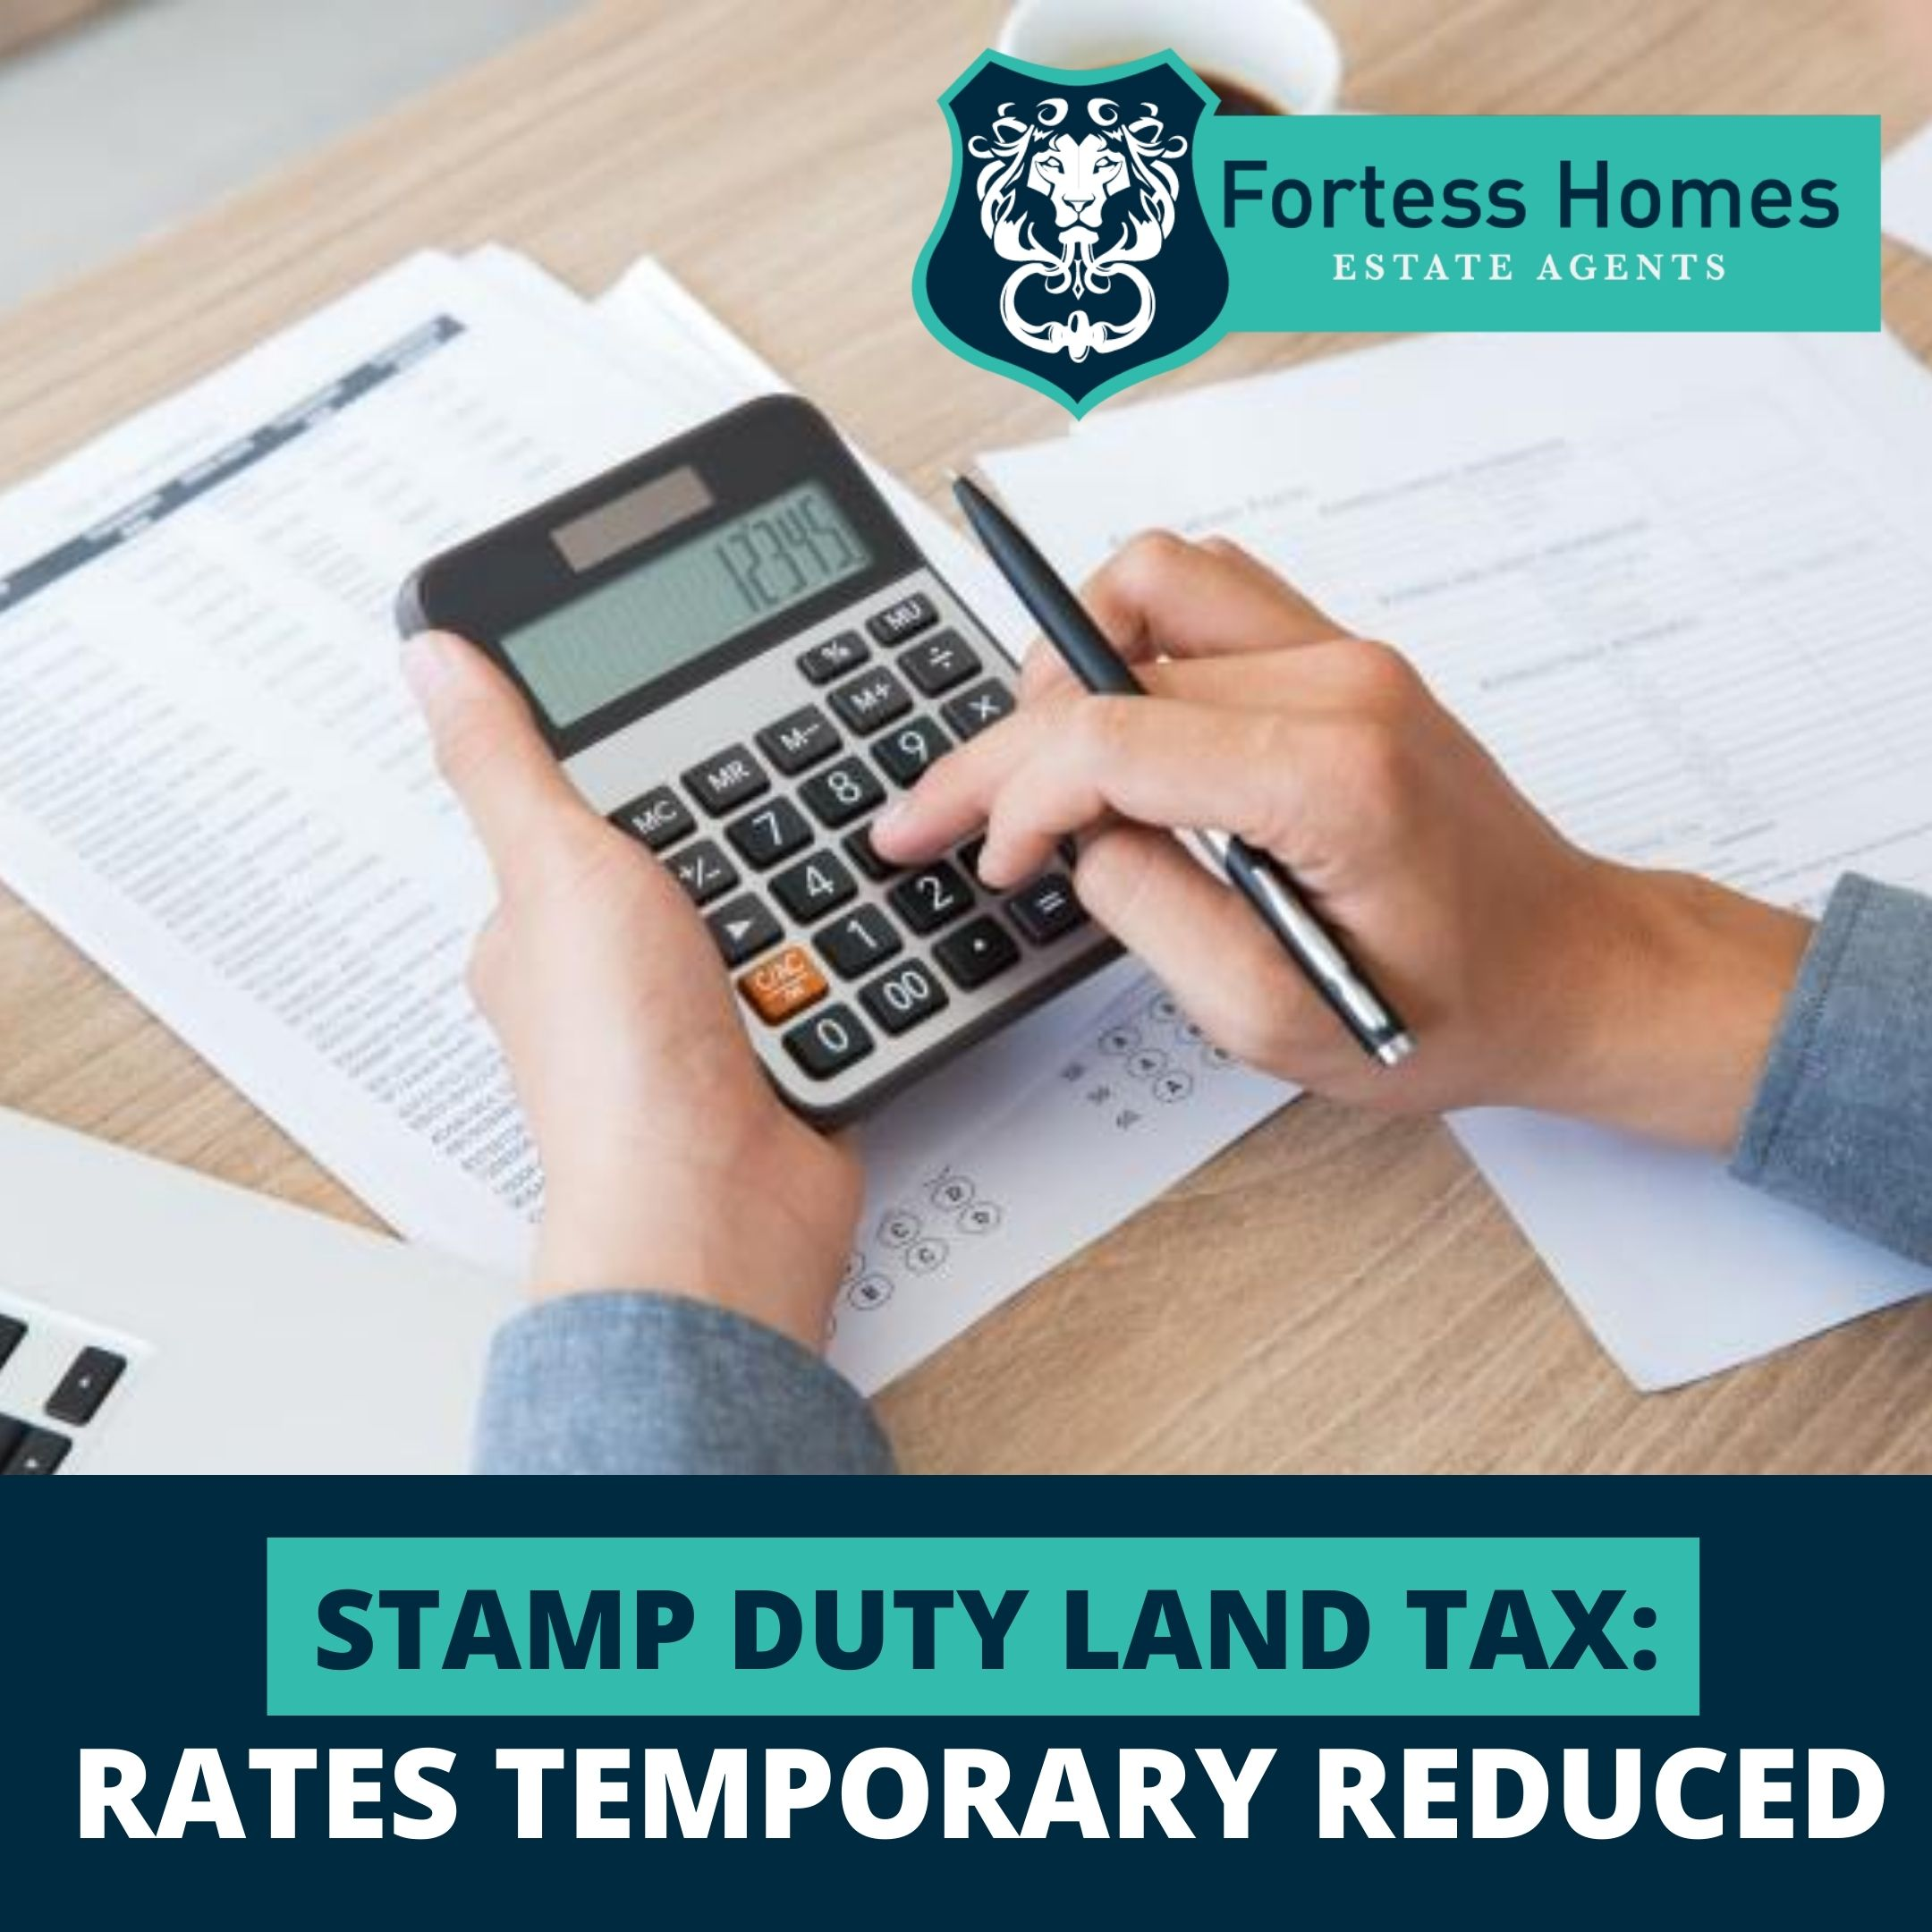 STAMP DUTY LAND TAX: RATES TEMPORARY REDUCED